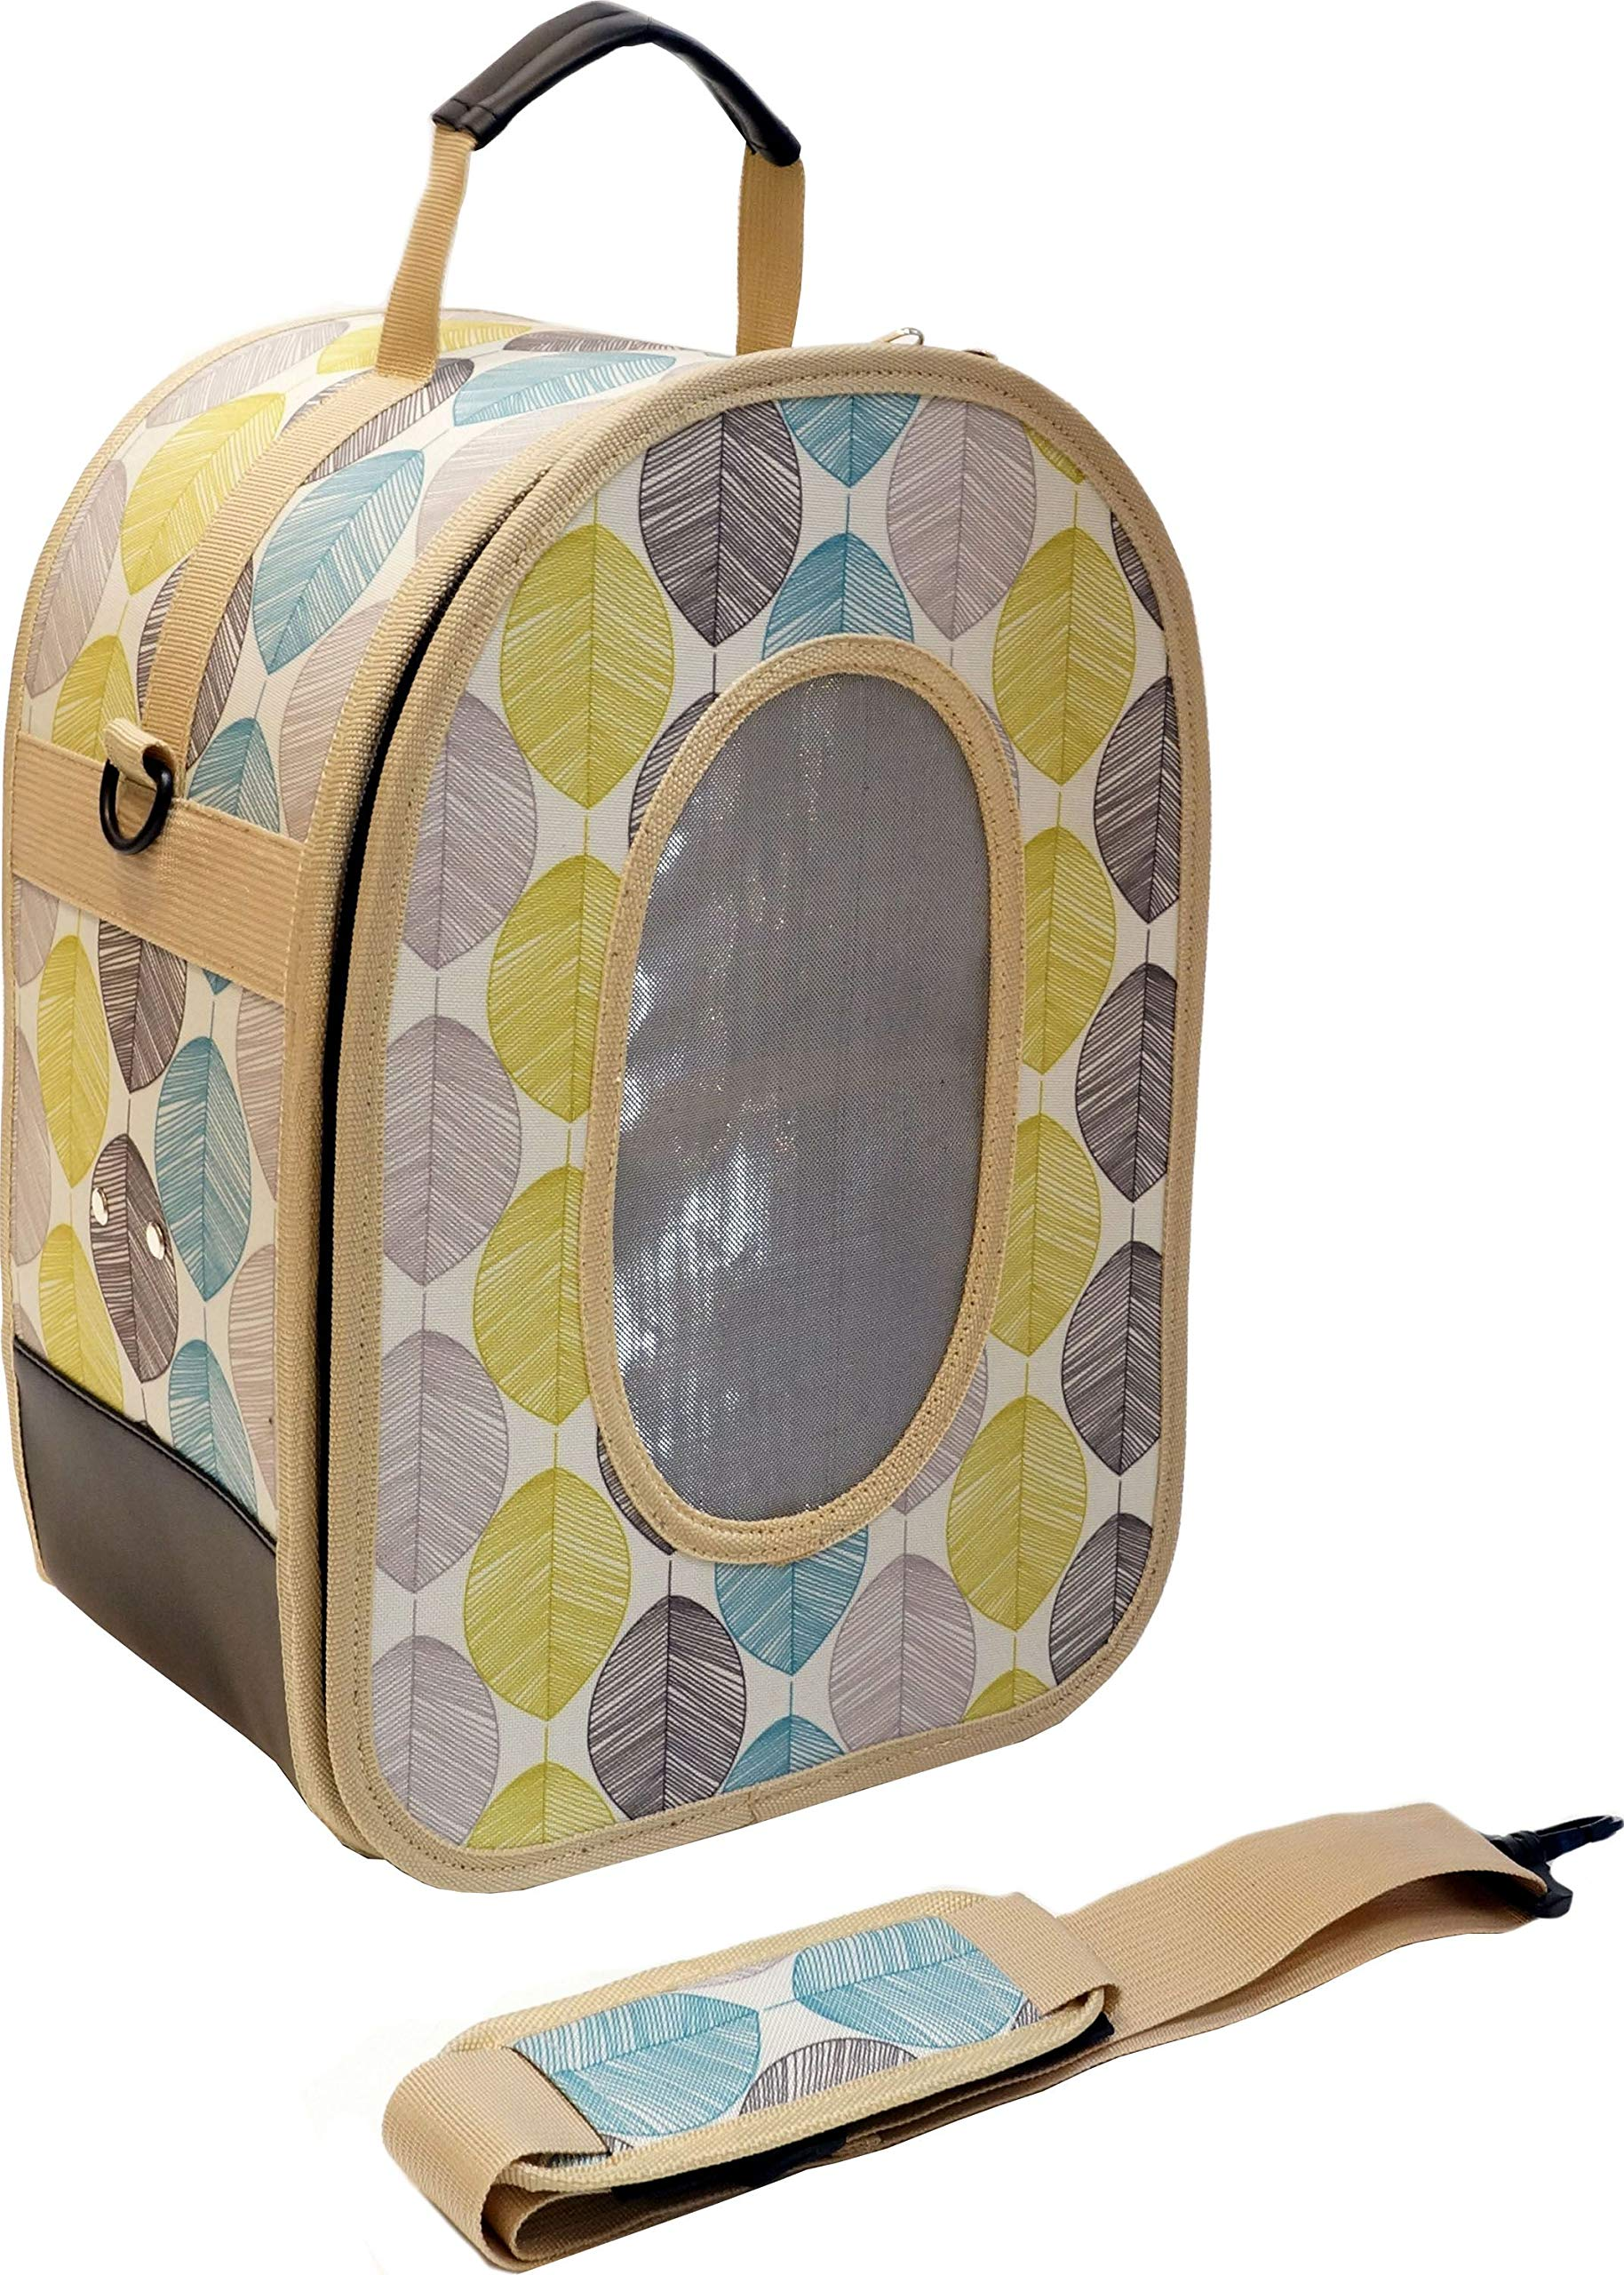 A&E Cage Co LLC A&E Soft Sided Travel Carrier for Birds